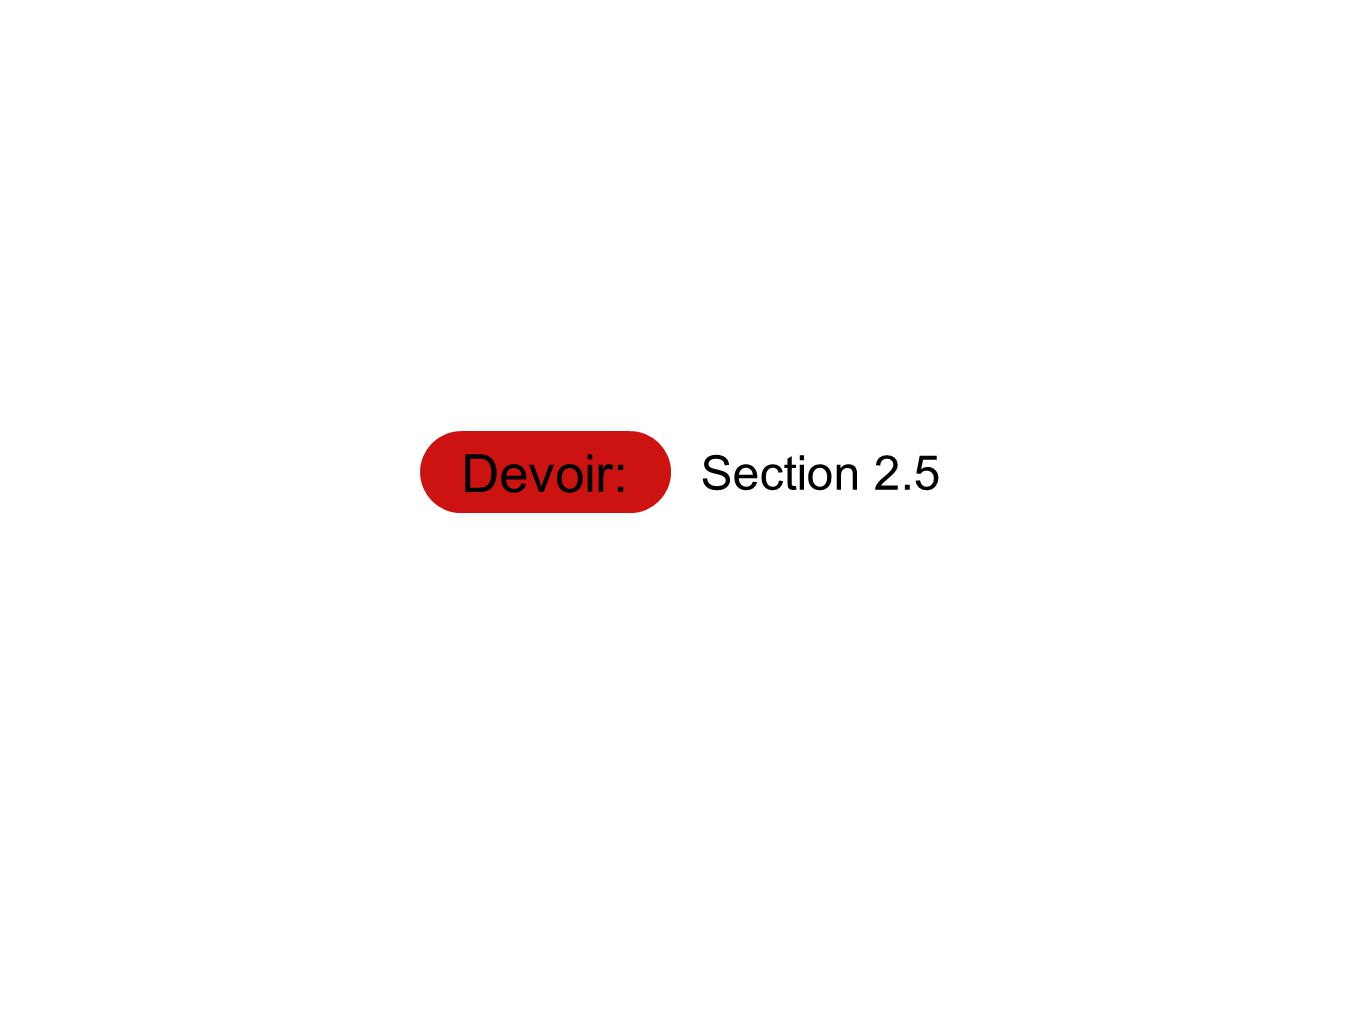 Devoir: Section 2.5